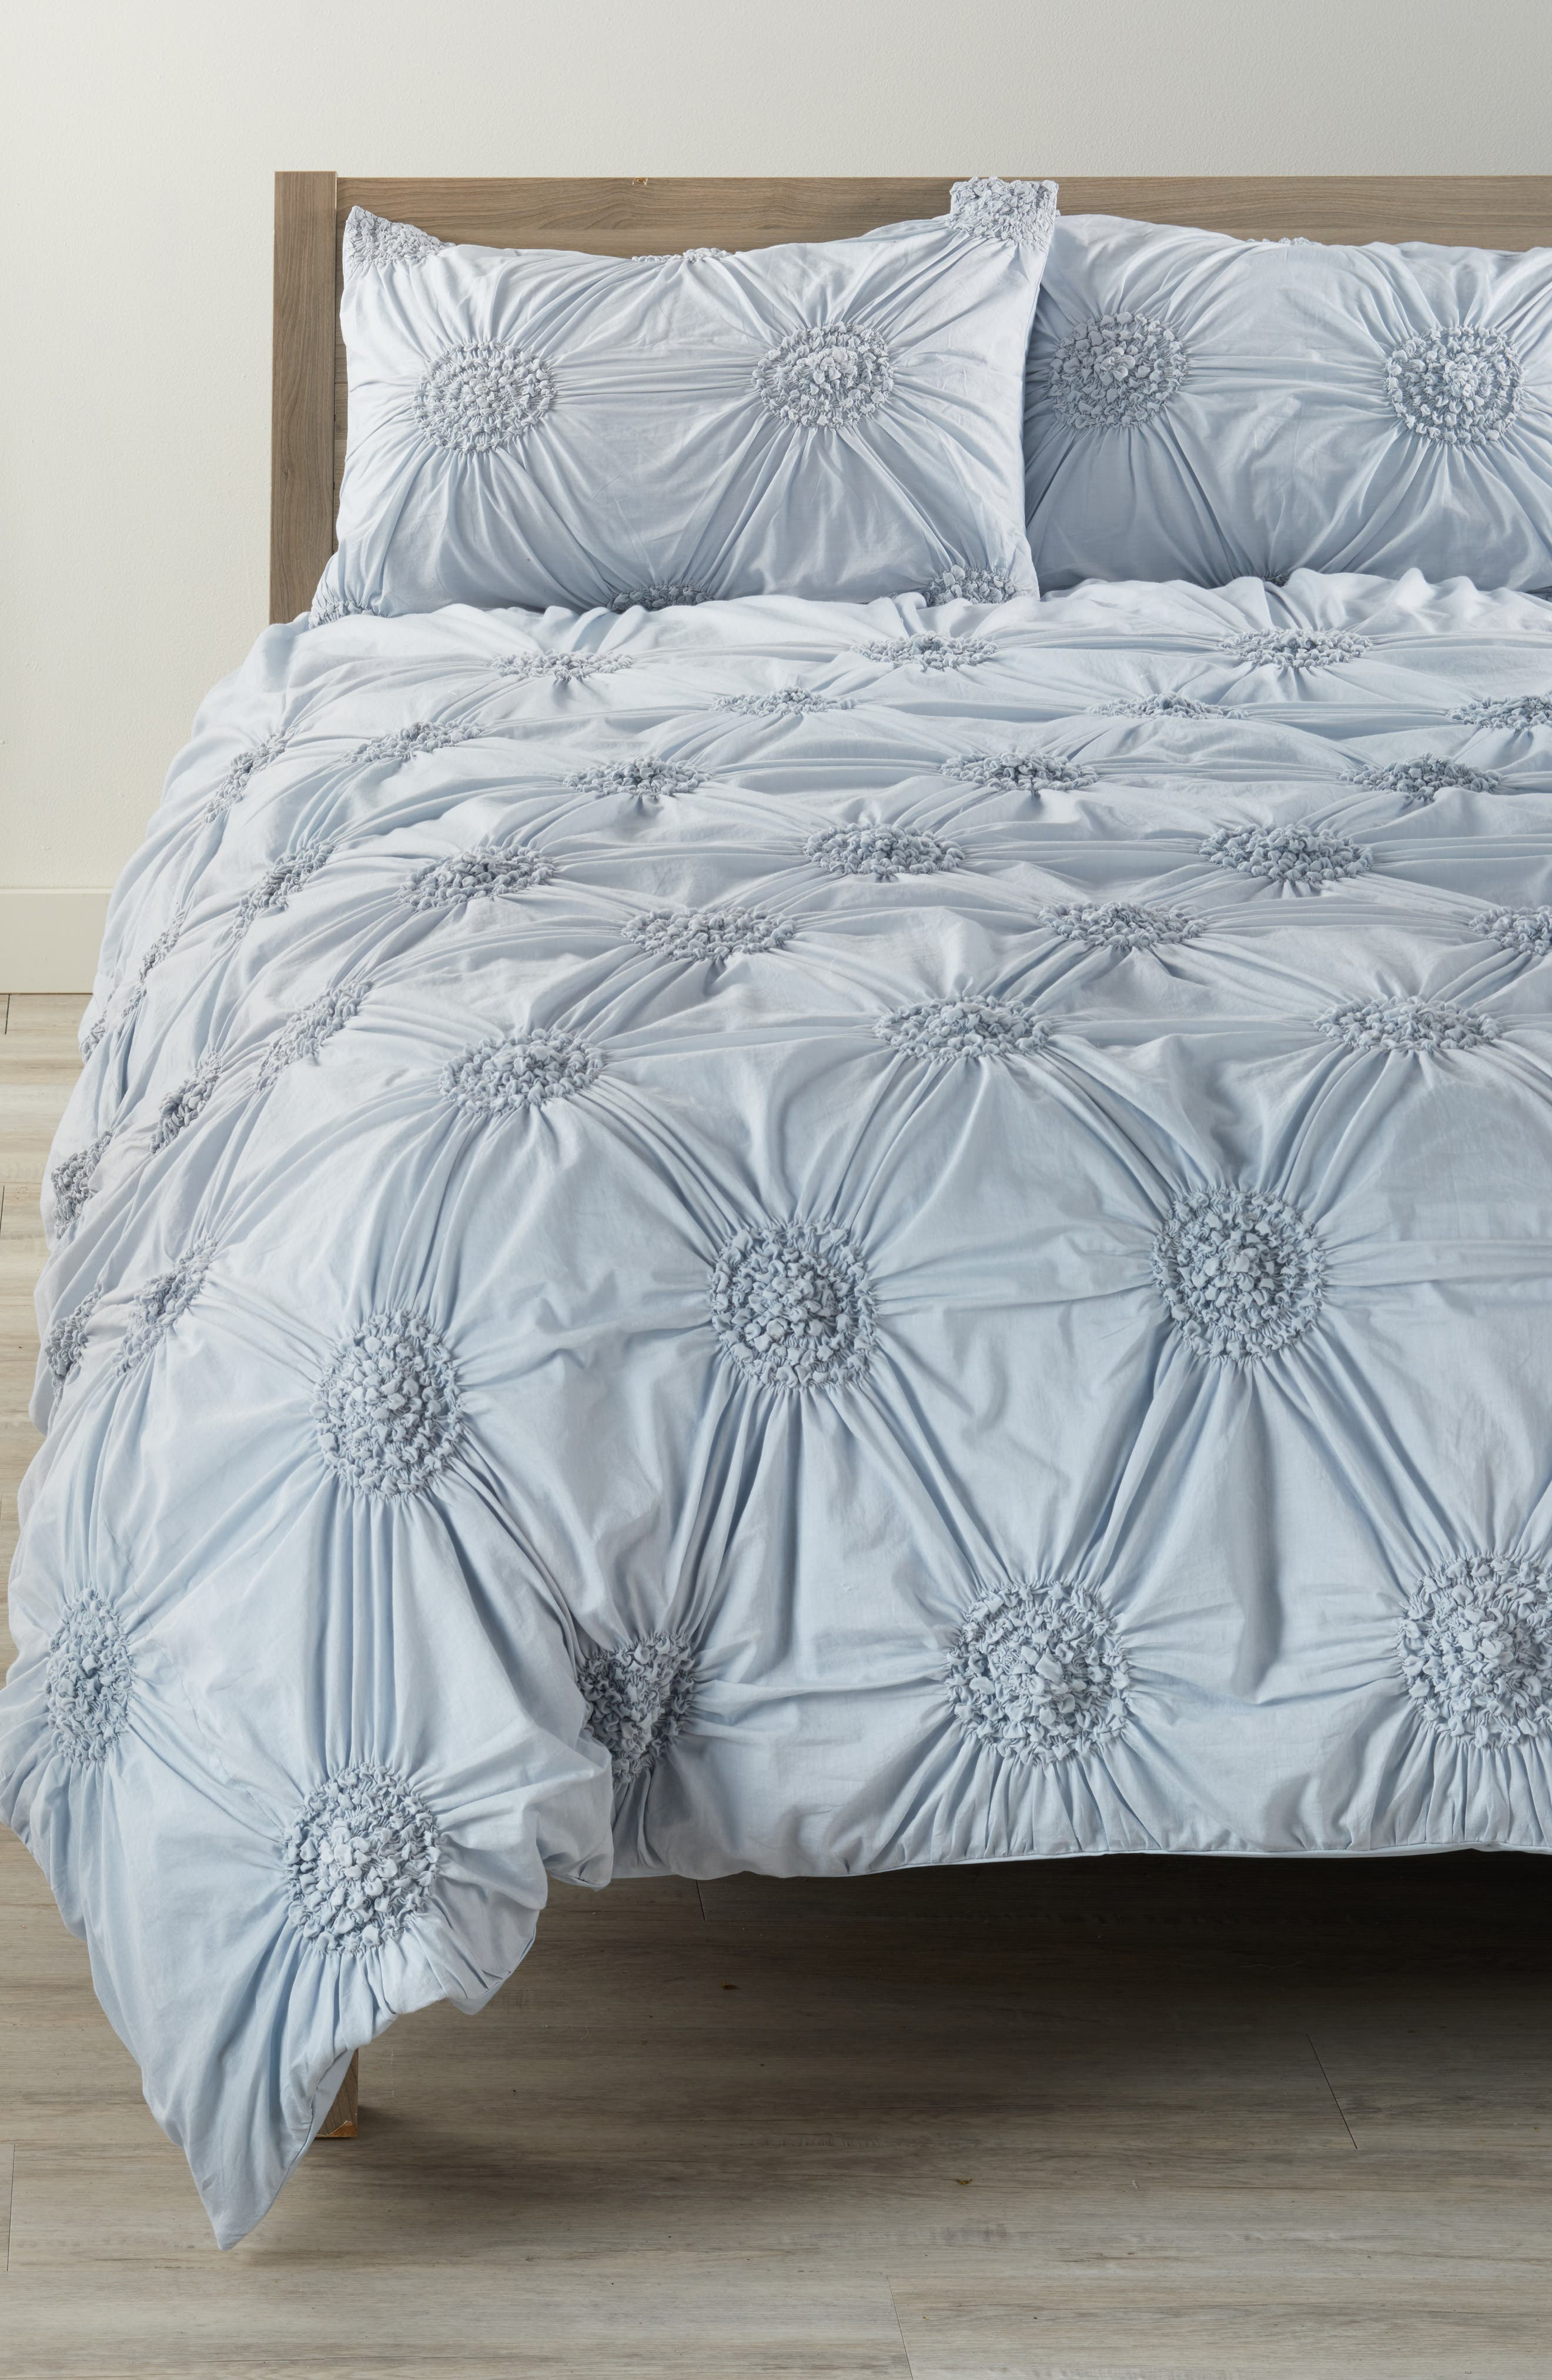 Alternate Image 1 Selected - Nordstrom at Home 'Chloe' Duvet Cover